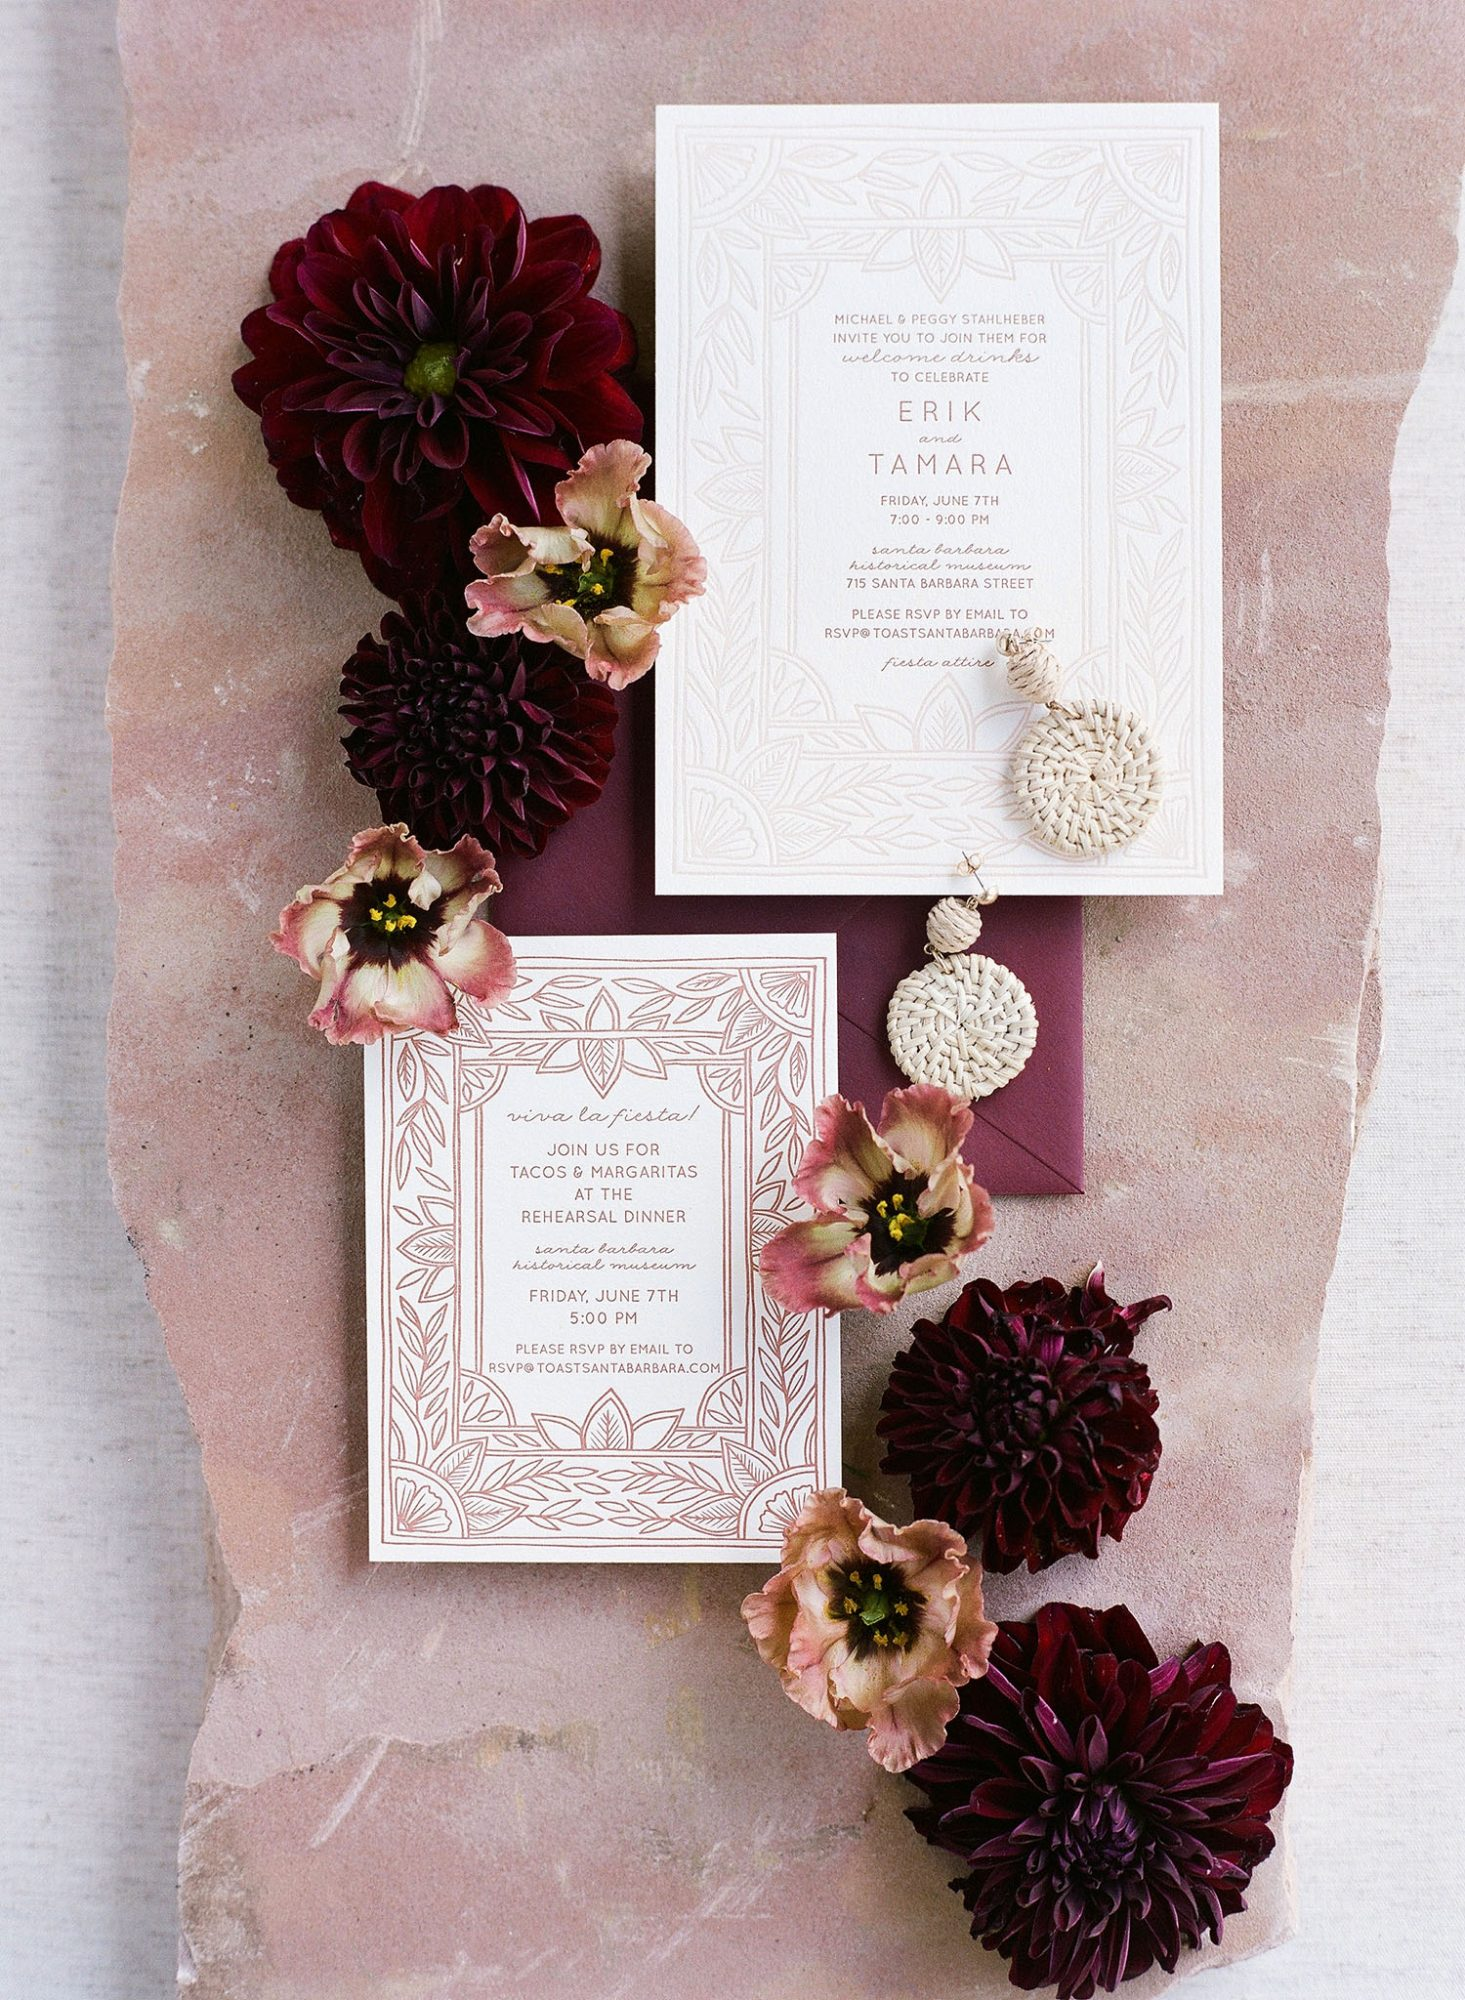 tamara erik wedding rehearsal dinner invites